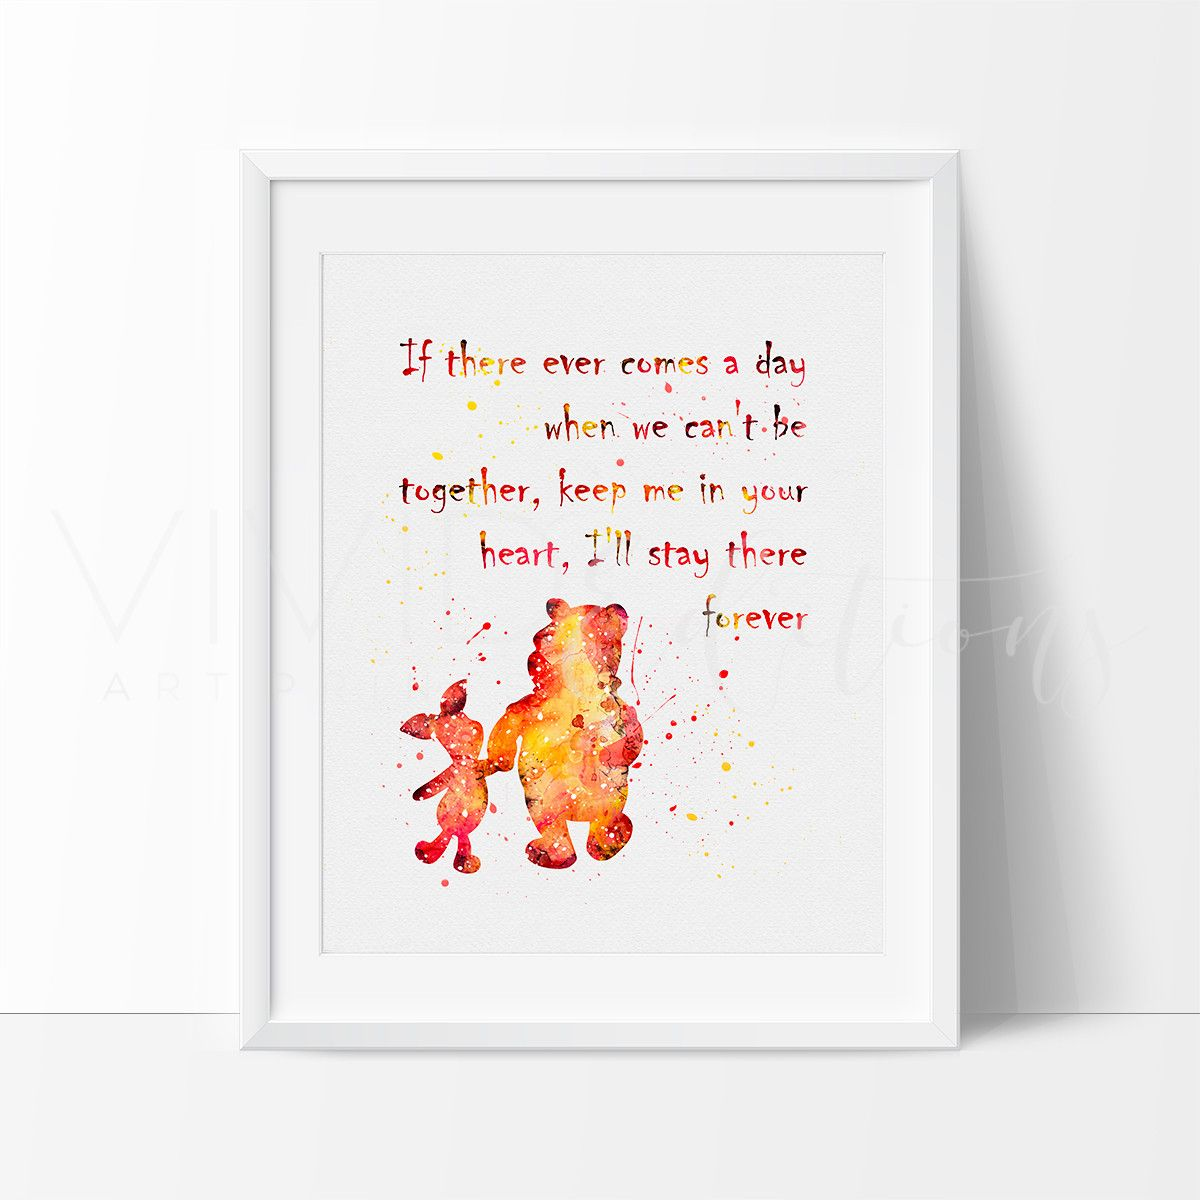 Winnie the pooh quote watercolor art print girl nursery art decorate your nursery with winnie the pooh quote boy girl nursery art prints for nursery walls amipublicfo Images